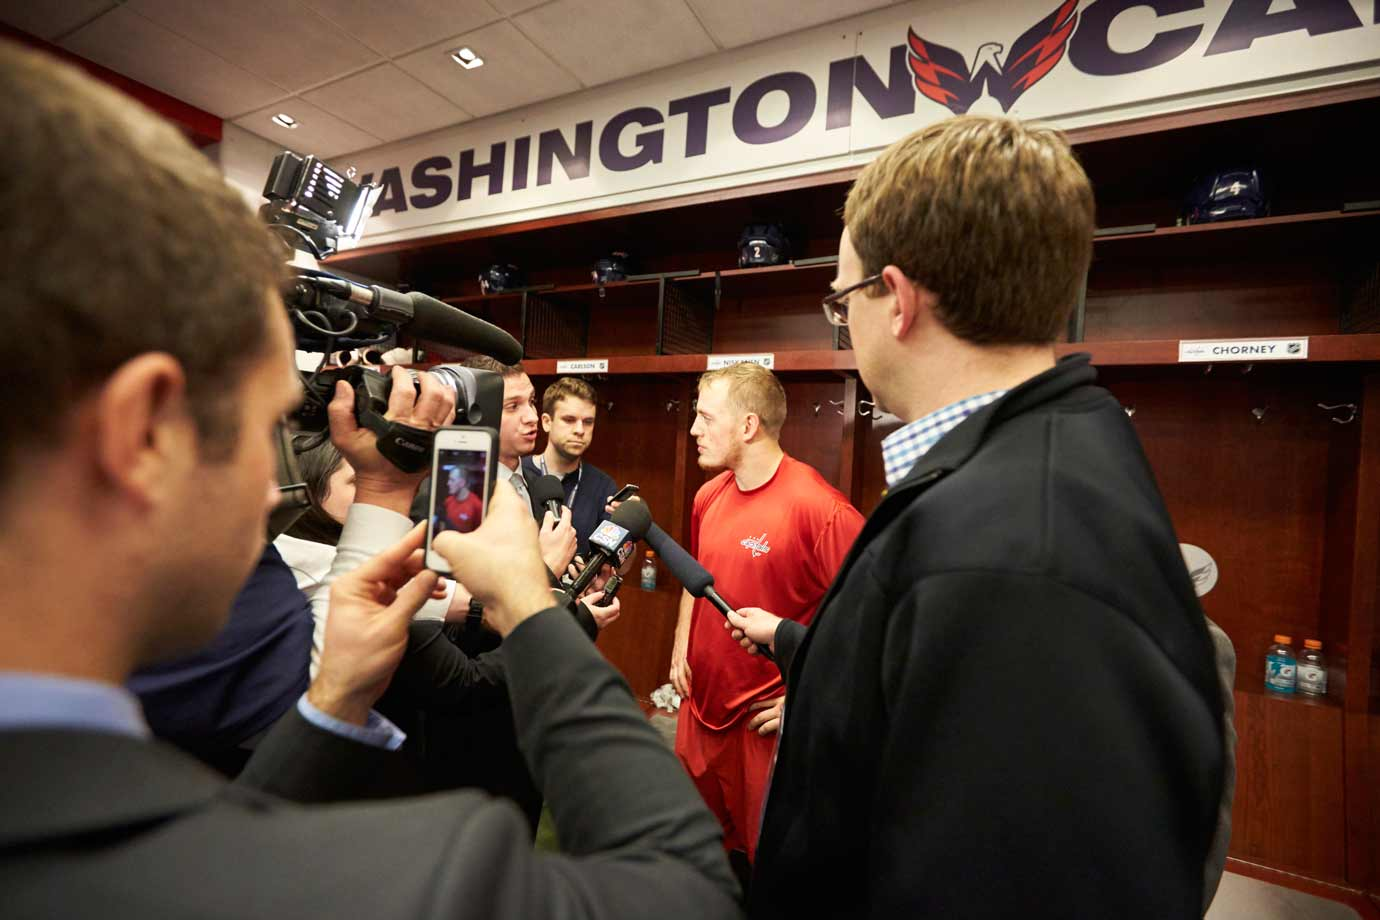 Defenseman Nate Schmidt conducts one of the hasty postgame interviews with the media. The Capitals have a 9:42 flight to catch at Dulles International and little time to spare.